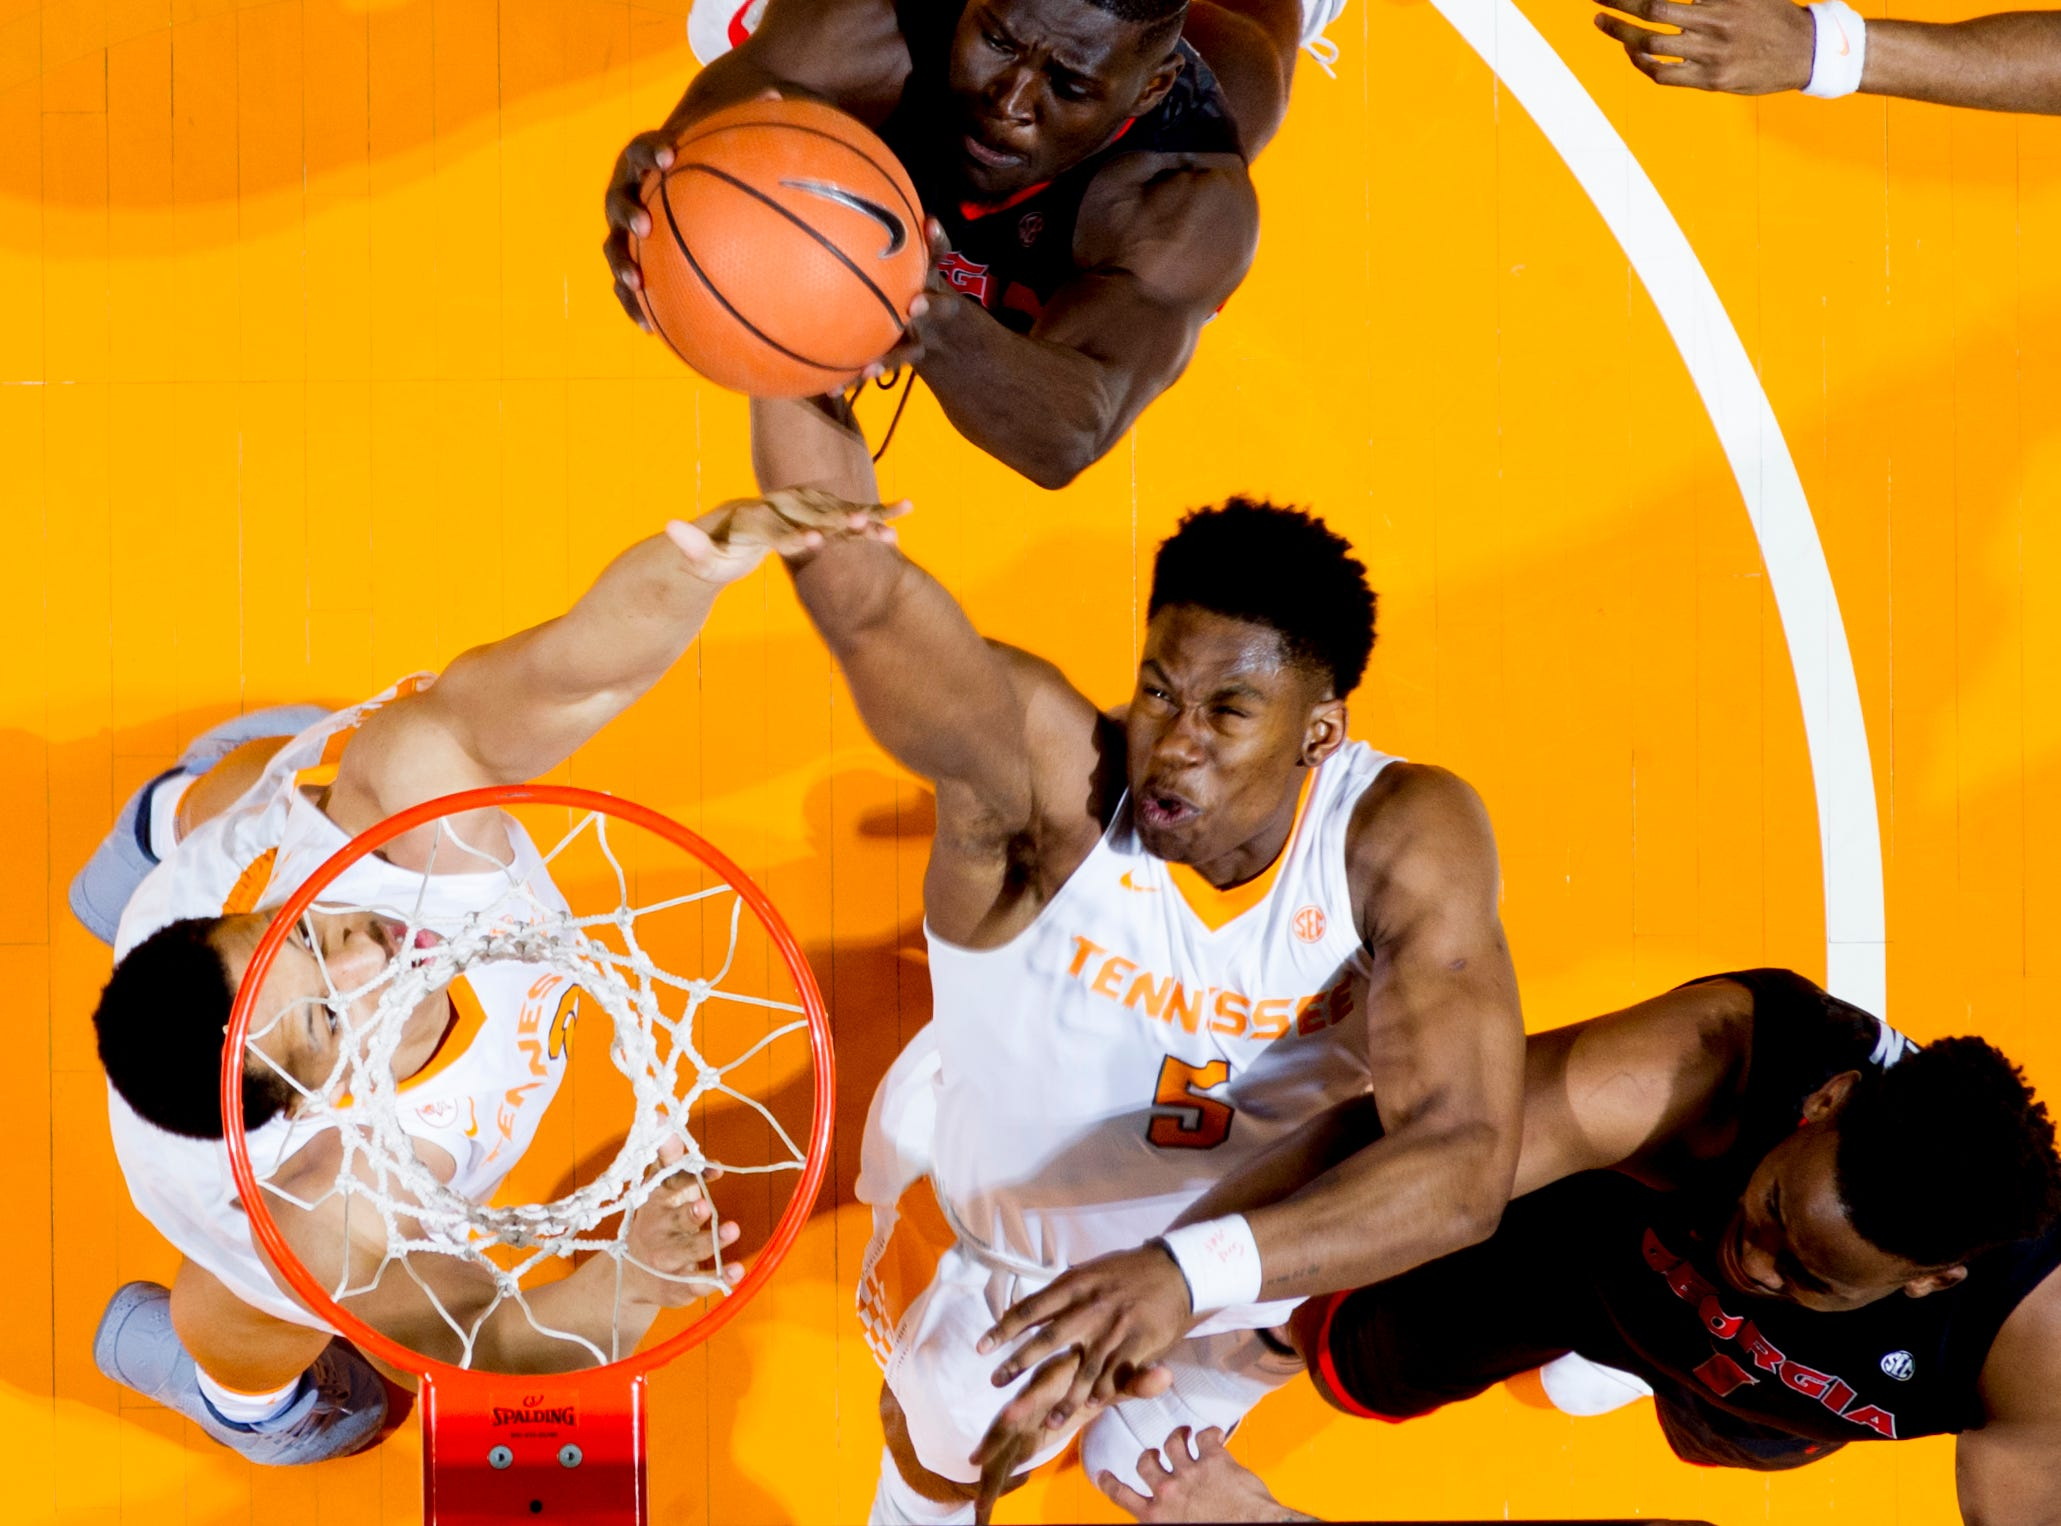 Tennessee forward Admiral Schofield (5) reaches for the rebound during a game between Tennessee and Georgia at Thompson-Boling Arena in Knoxville, Tennessee on Saturday, March 3, 2018.